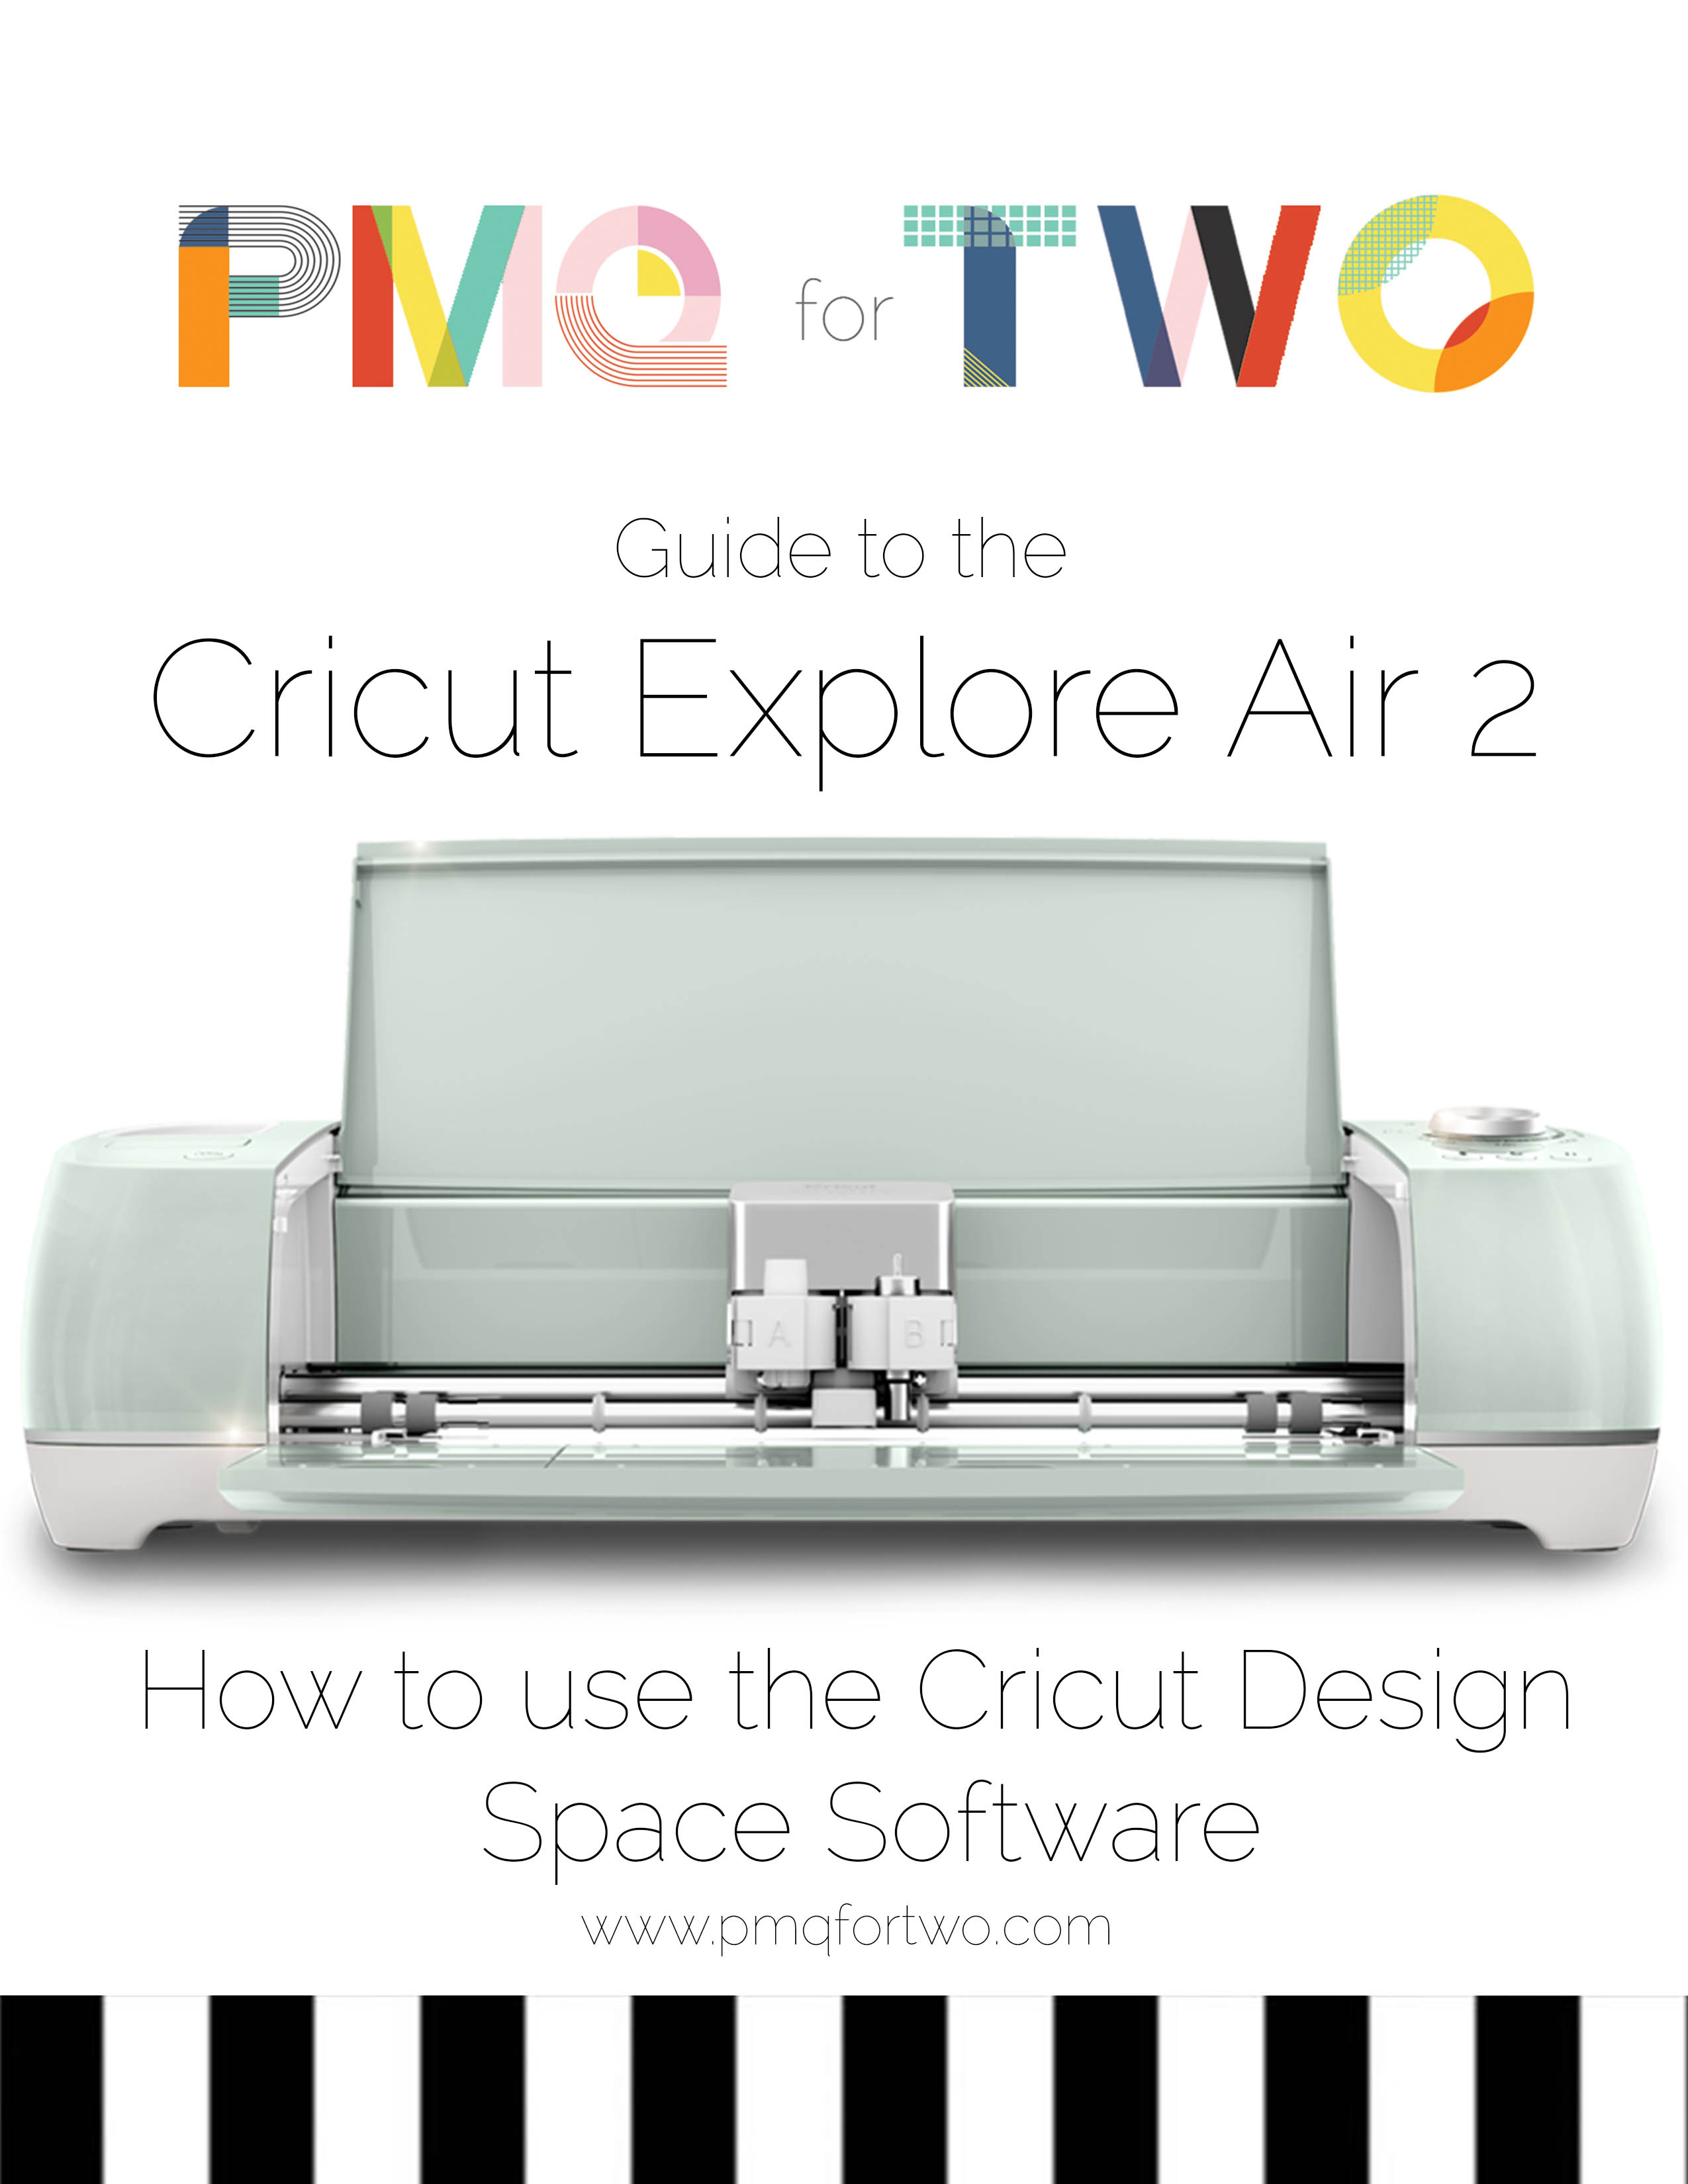 How To Use The Cricut Design Space Software